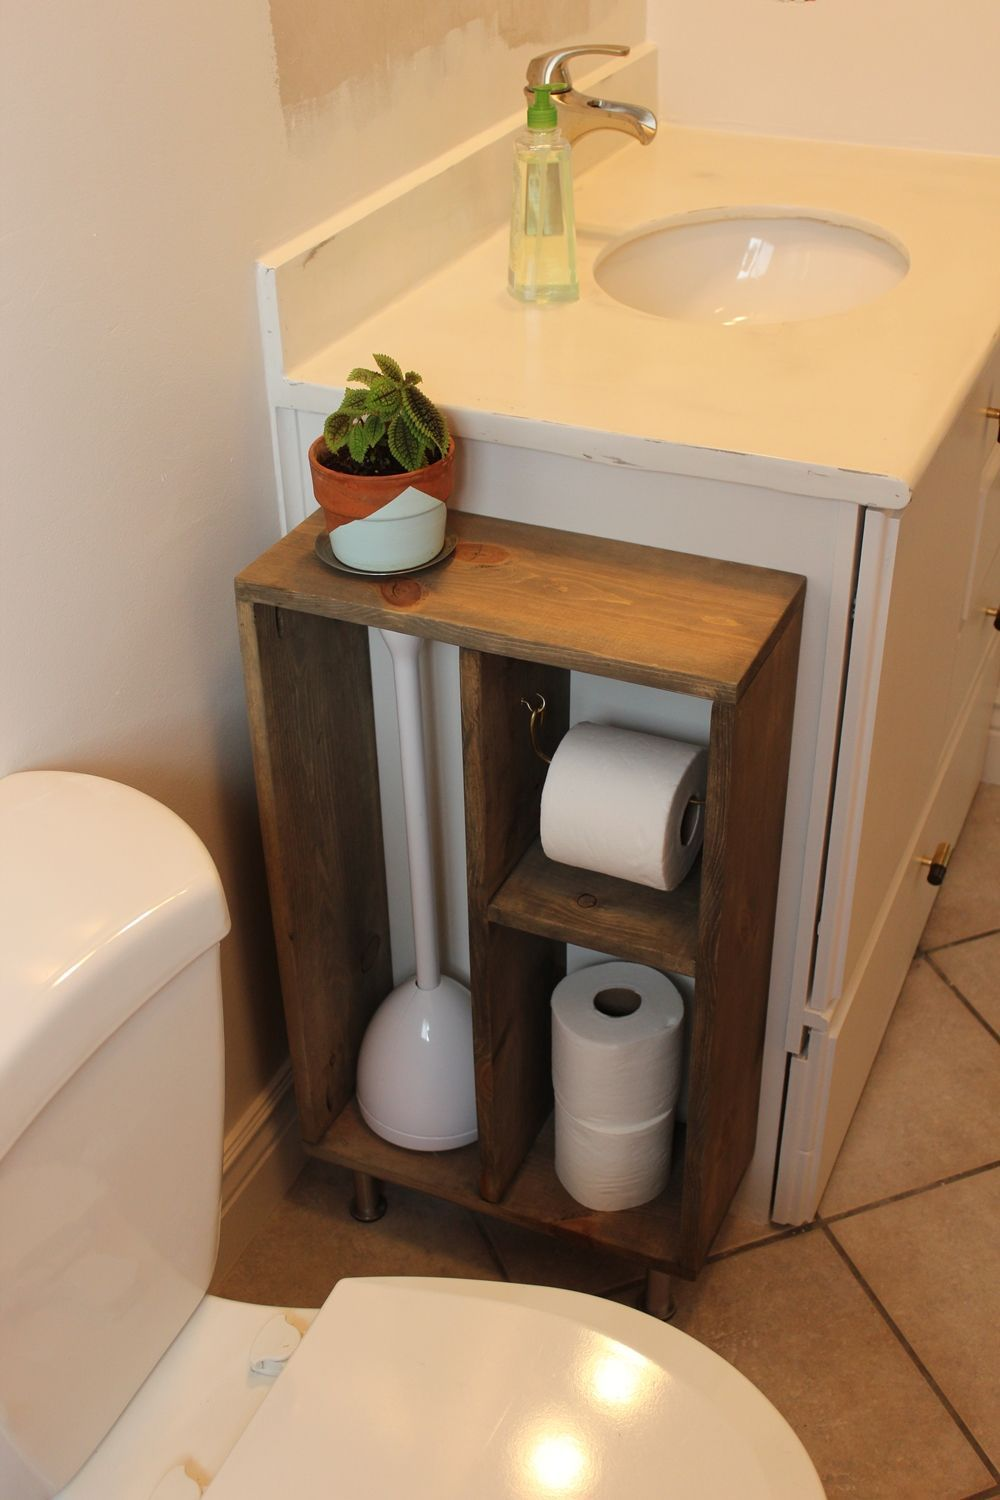 25 Best Toilet Paper Holder Ideas and Designs for 2018 Toilet Paper Holder For Small Bathroom on toilet paper and magazine rack, toilet paper holder ideas, toilet paper holder recessed bathroom, toilet paper holders for small spaces, toilet paper holder extension, toilet paper magazine holder for bathroom, toilet bowls for small bathrooms, toilet tissue extender, toilet paper holder cabinet, toilet roll holder, toilet paper holder cat, toilet paper holder wood projects, towel holders for small bathrooms, toilet paper holder stand, toilet paper holders for bathroom storage, toilet paper holder interesting, toilet tissue holder,